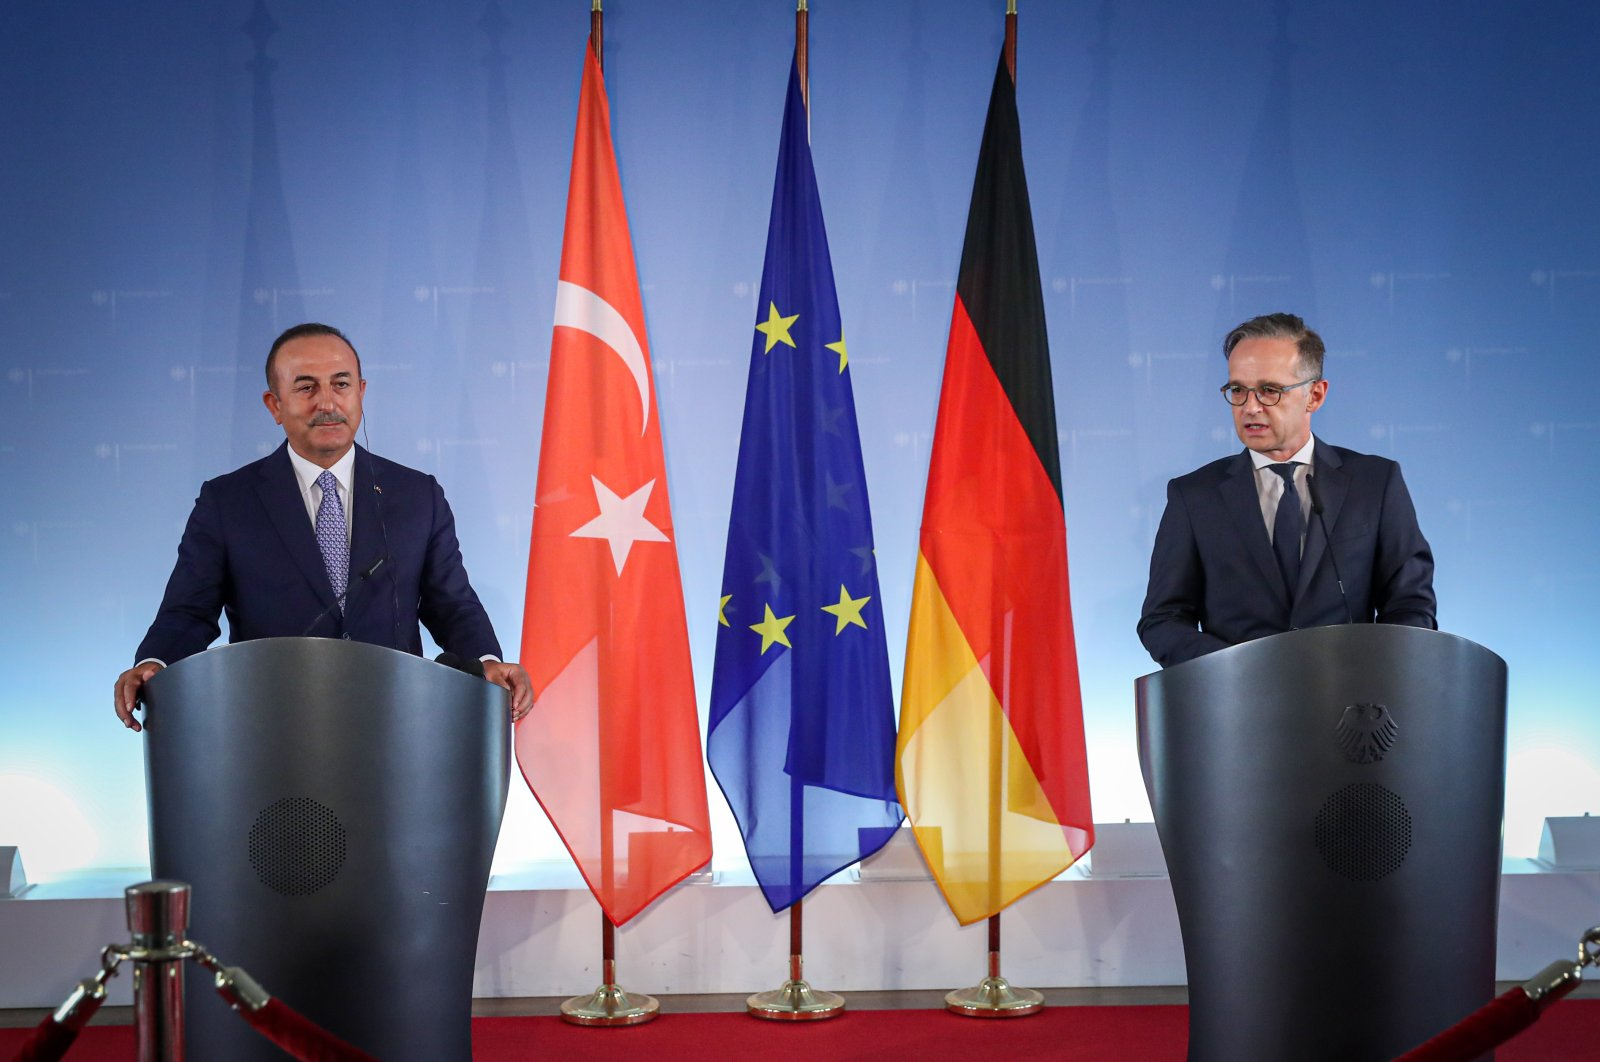 Foreign Minister Mevlüt Çavuşoğlu (L) and his German counterpart Heiko Maas during a joint press conference, Berlin, July 2, 2020. (AA Photo)